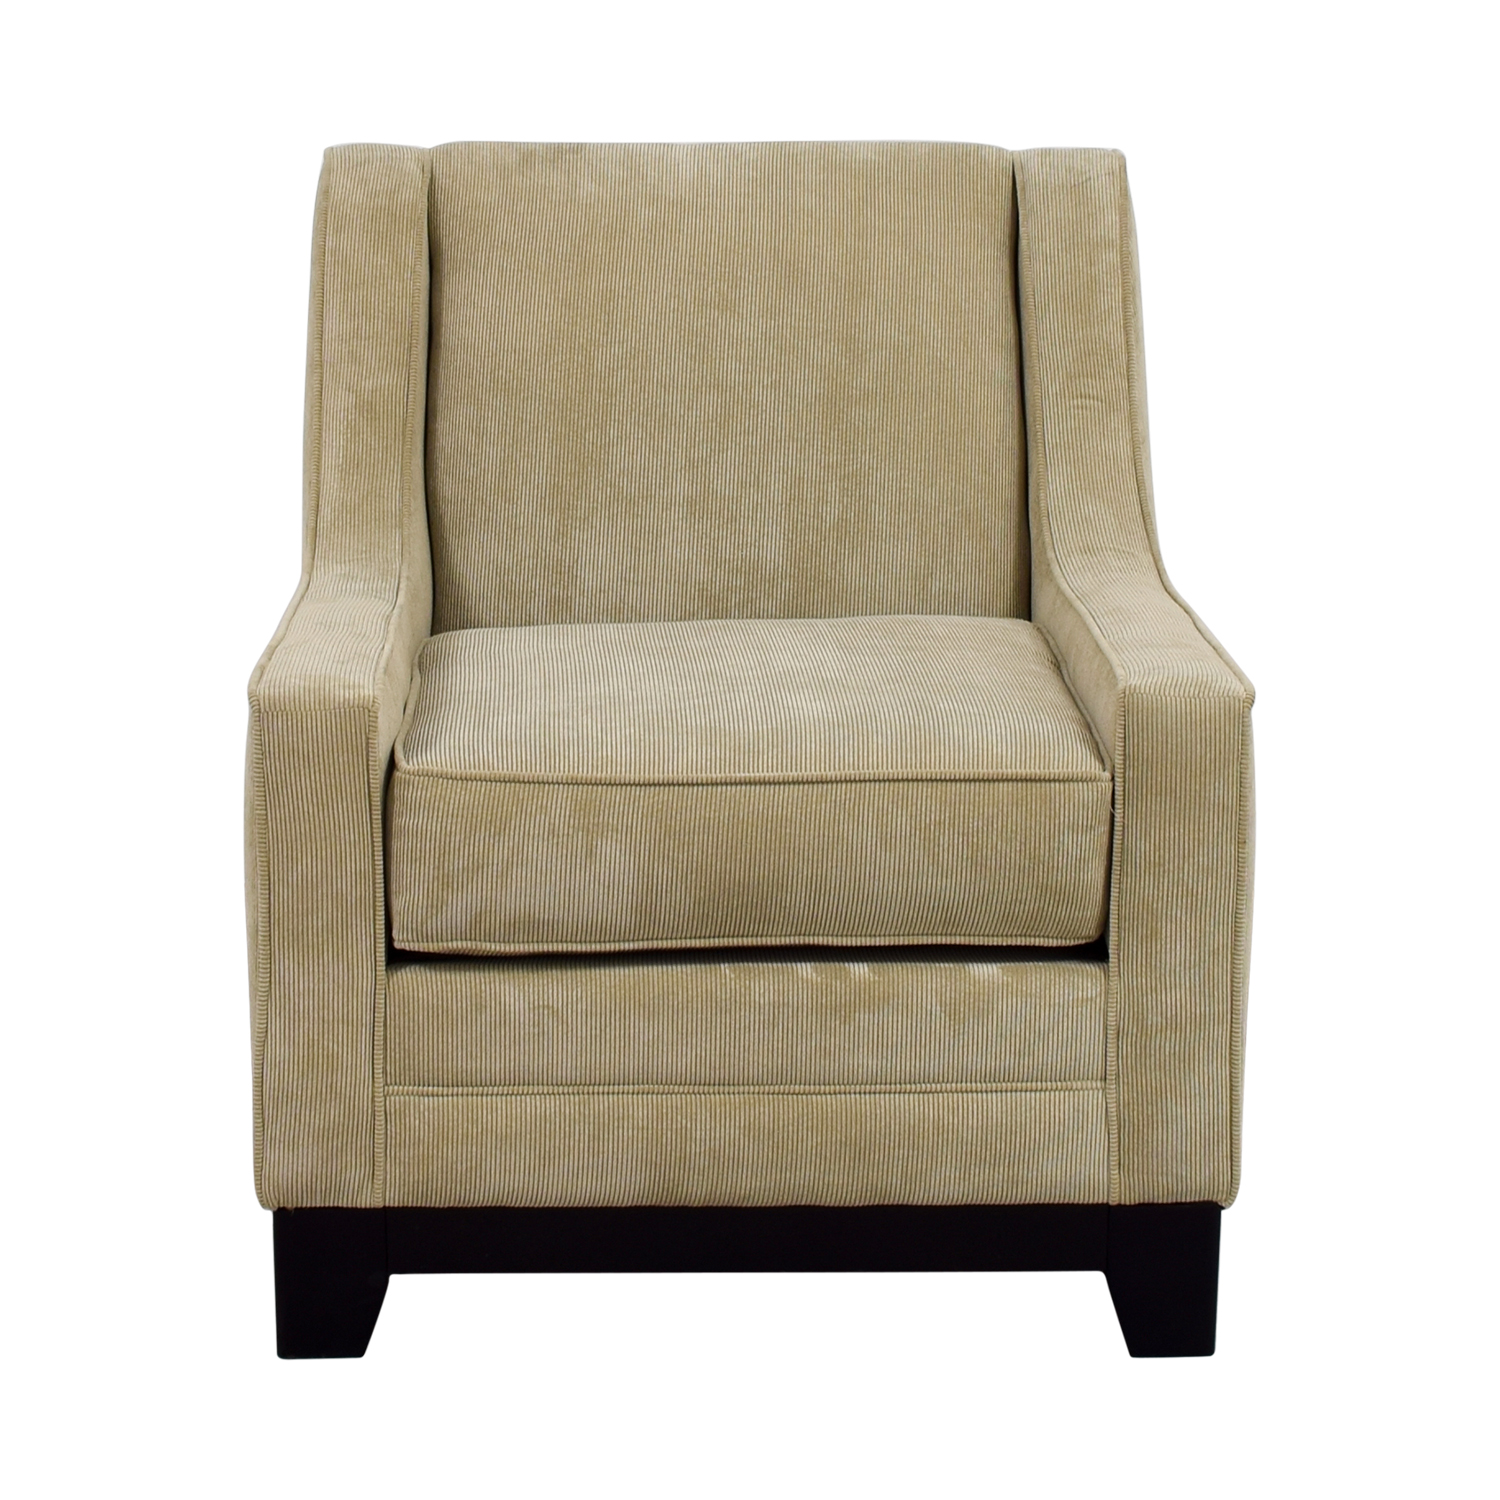 Attrayant Buy May Furniture May Furniture Tan Corduroy Accent Chair Online ...